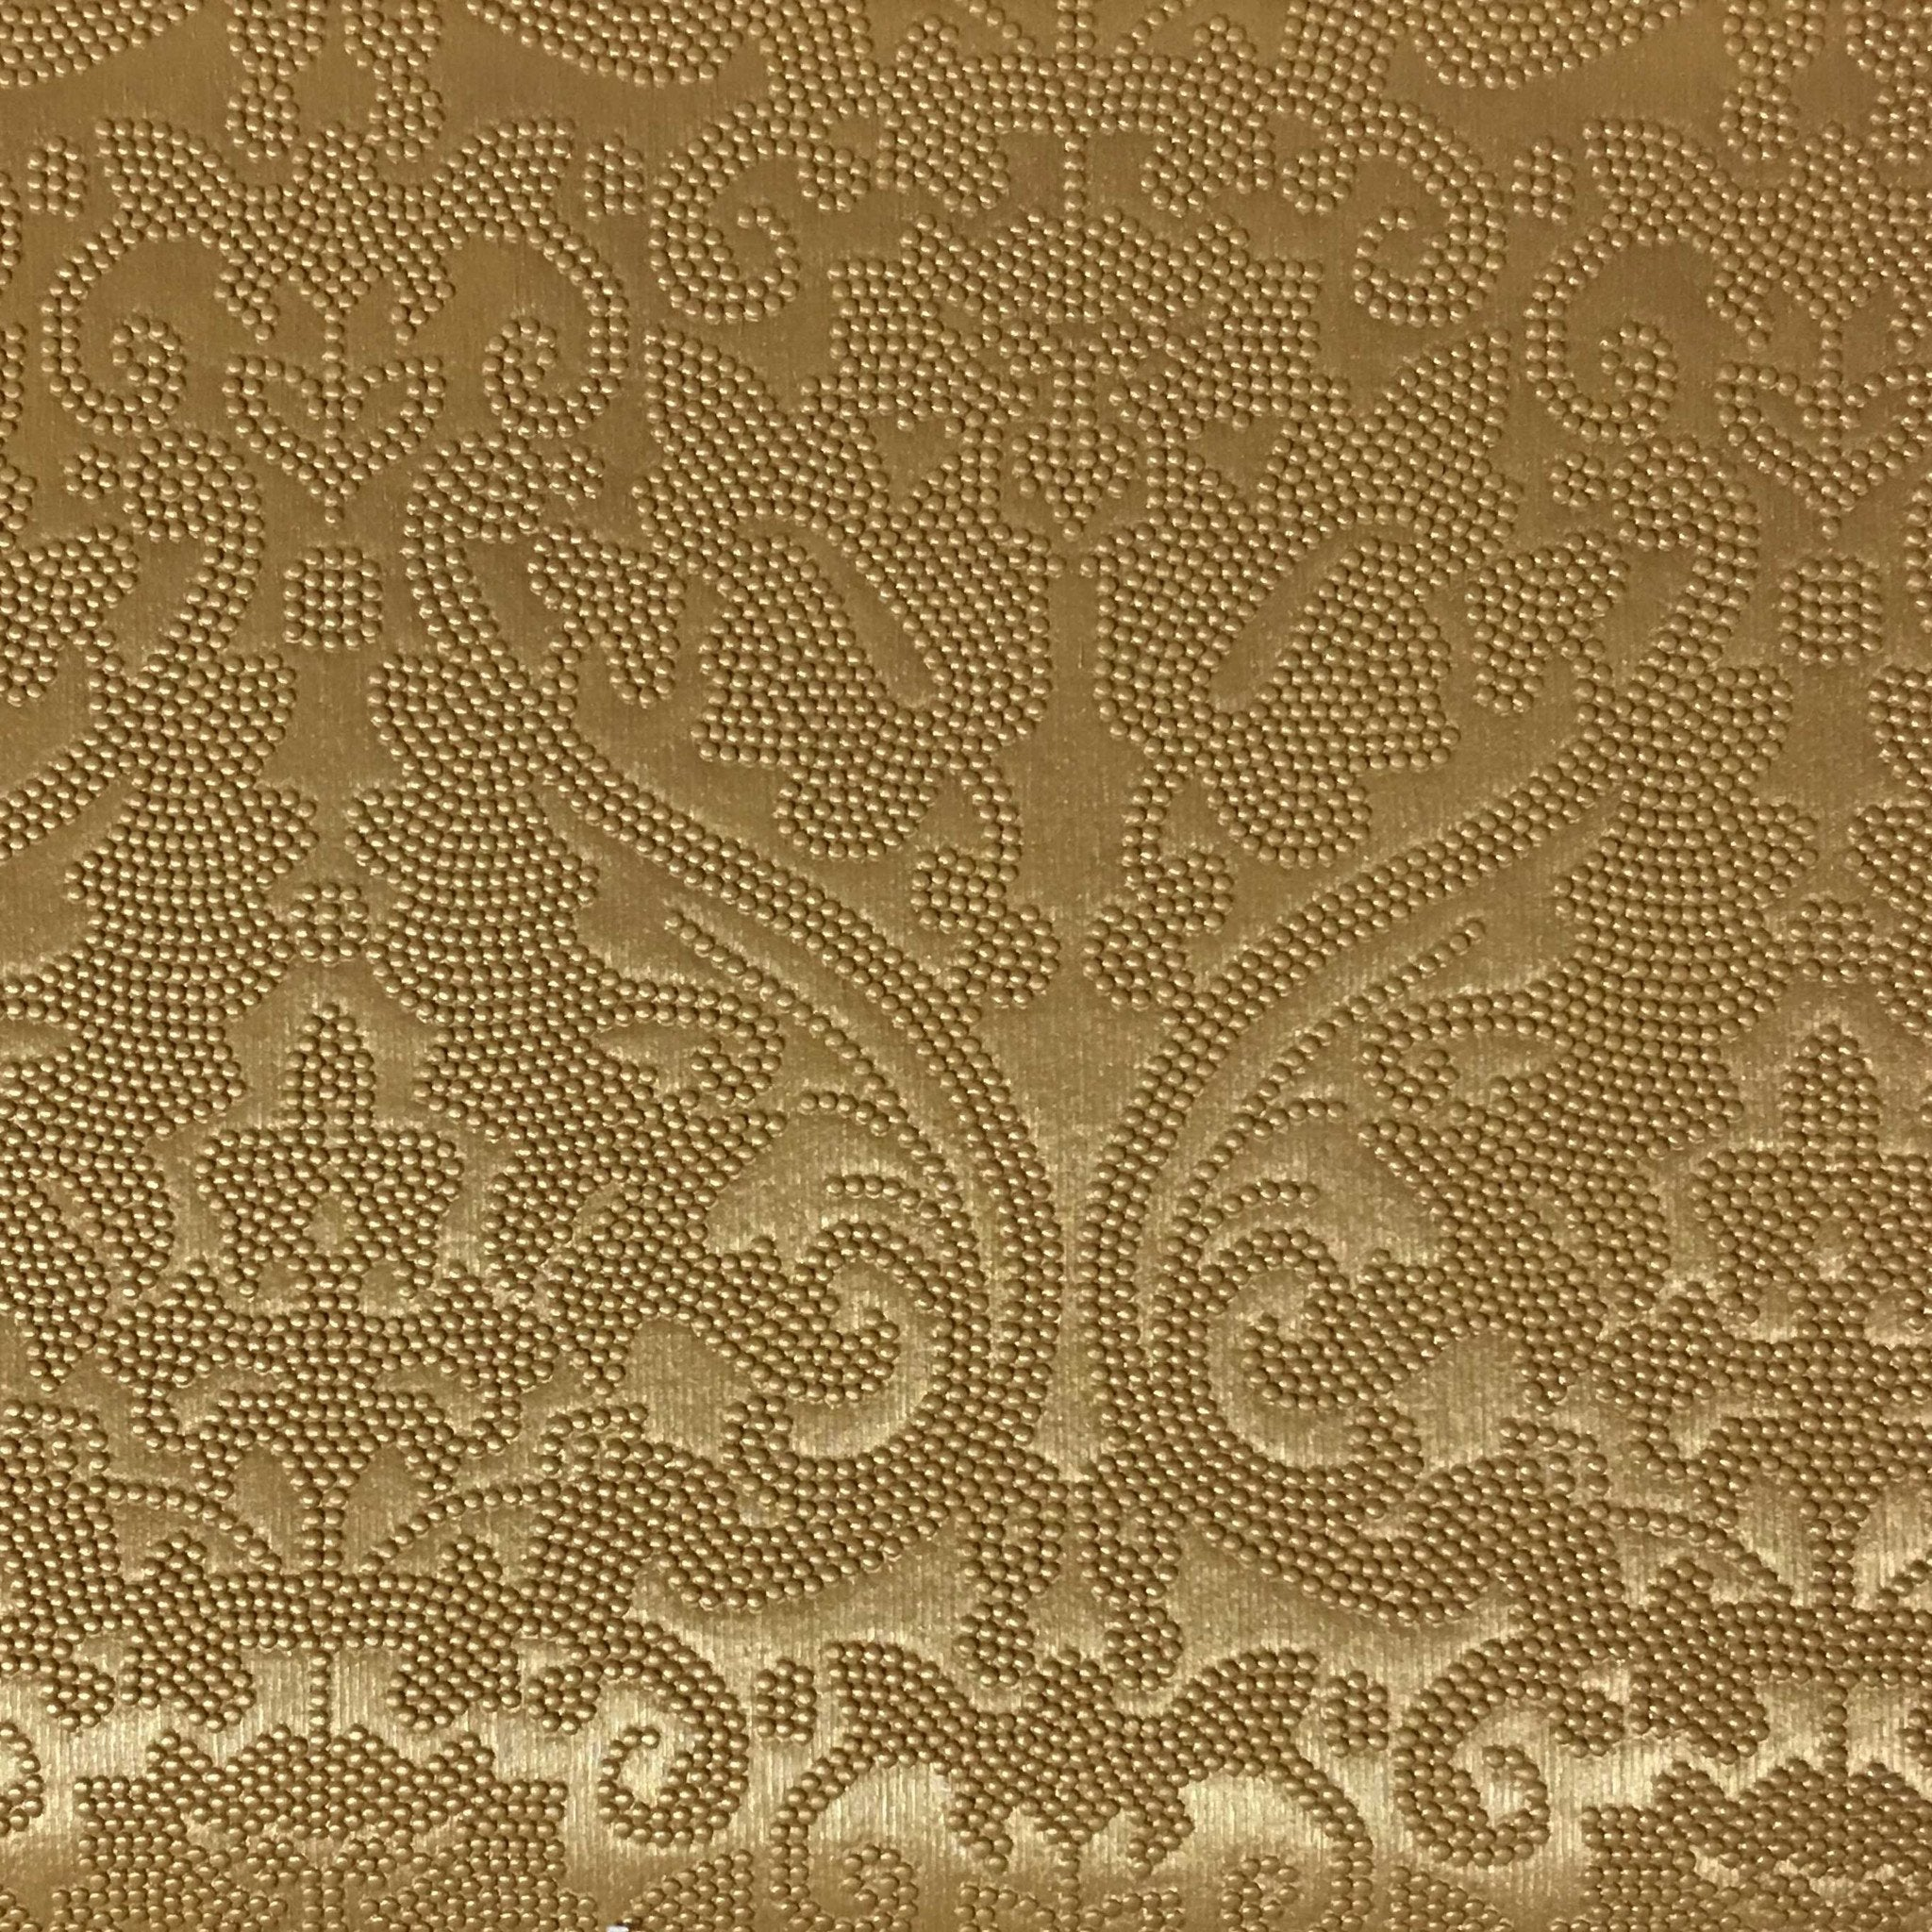 Lyon damask vinyl fabric designer pattern vinyl for Upholstery fabric